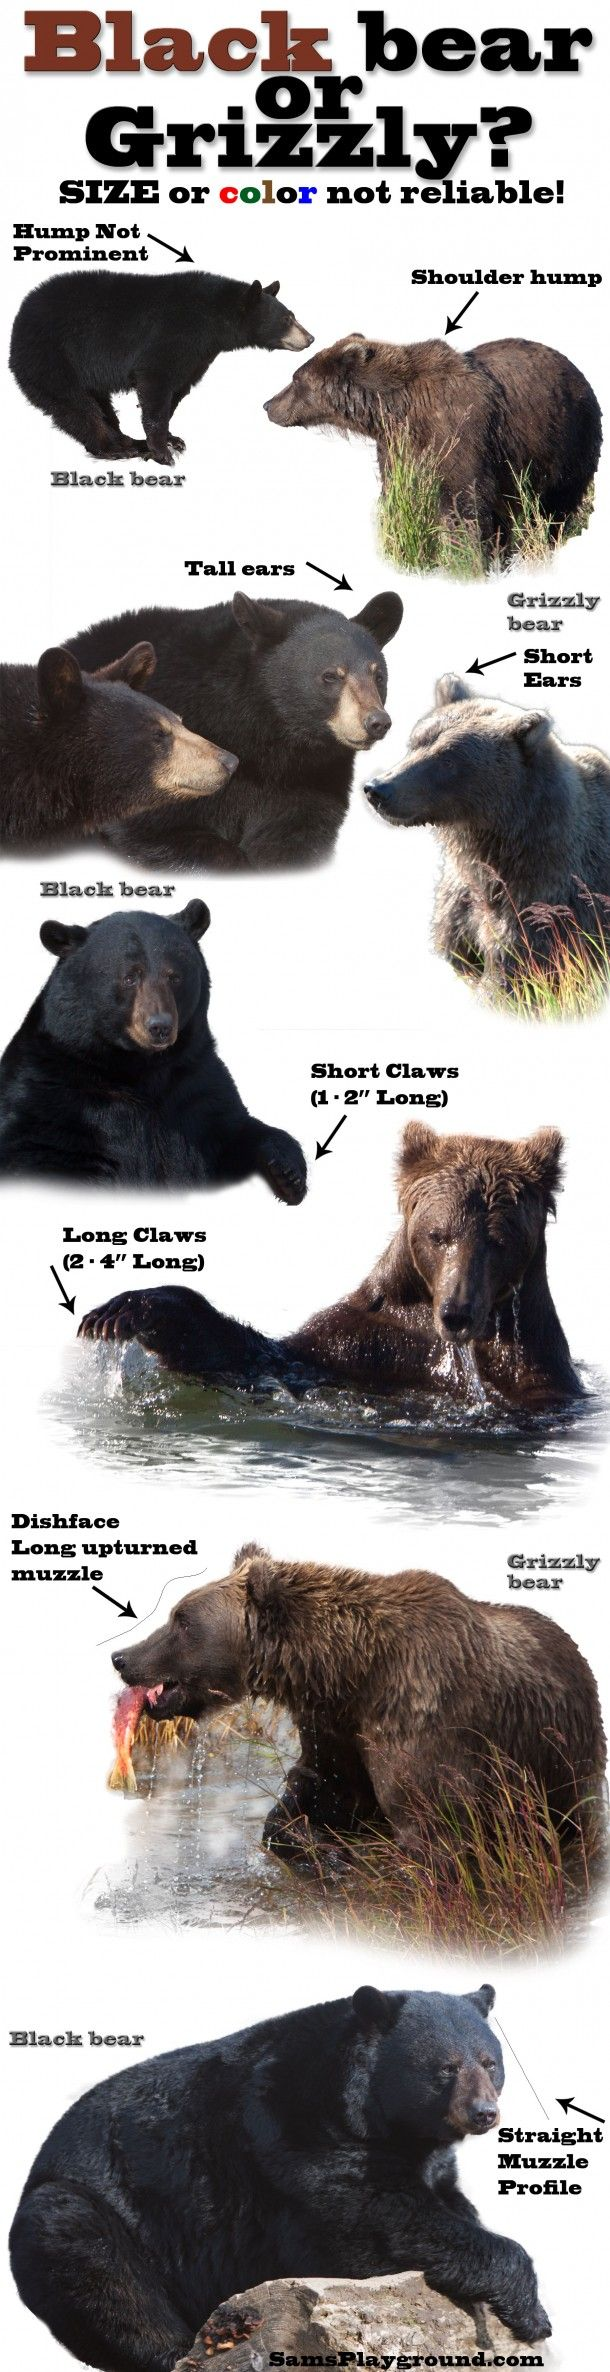 black or grizzly bear comparison info-graphic - its good to know the difference.